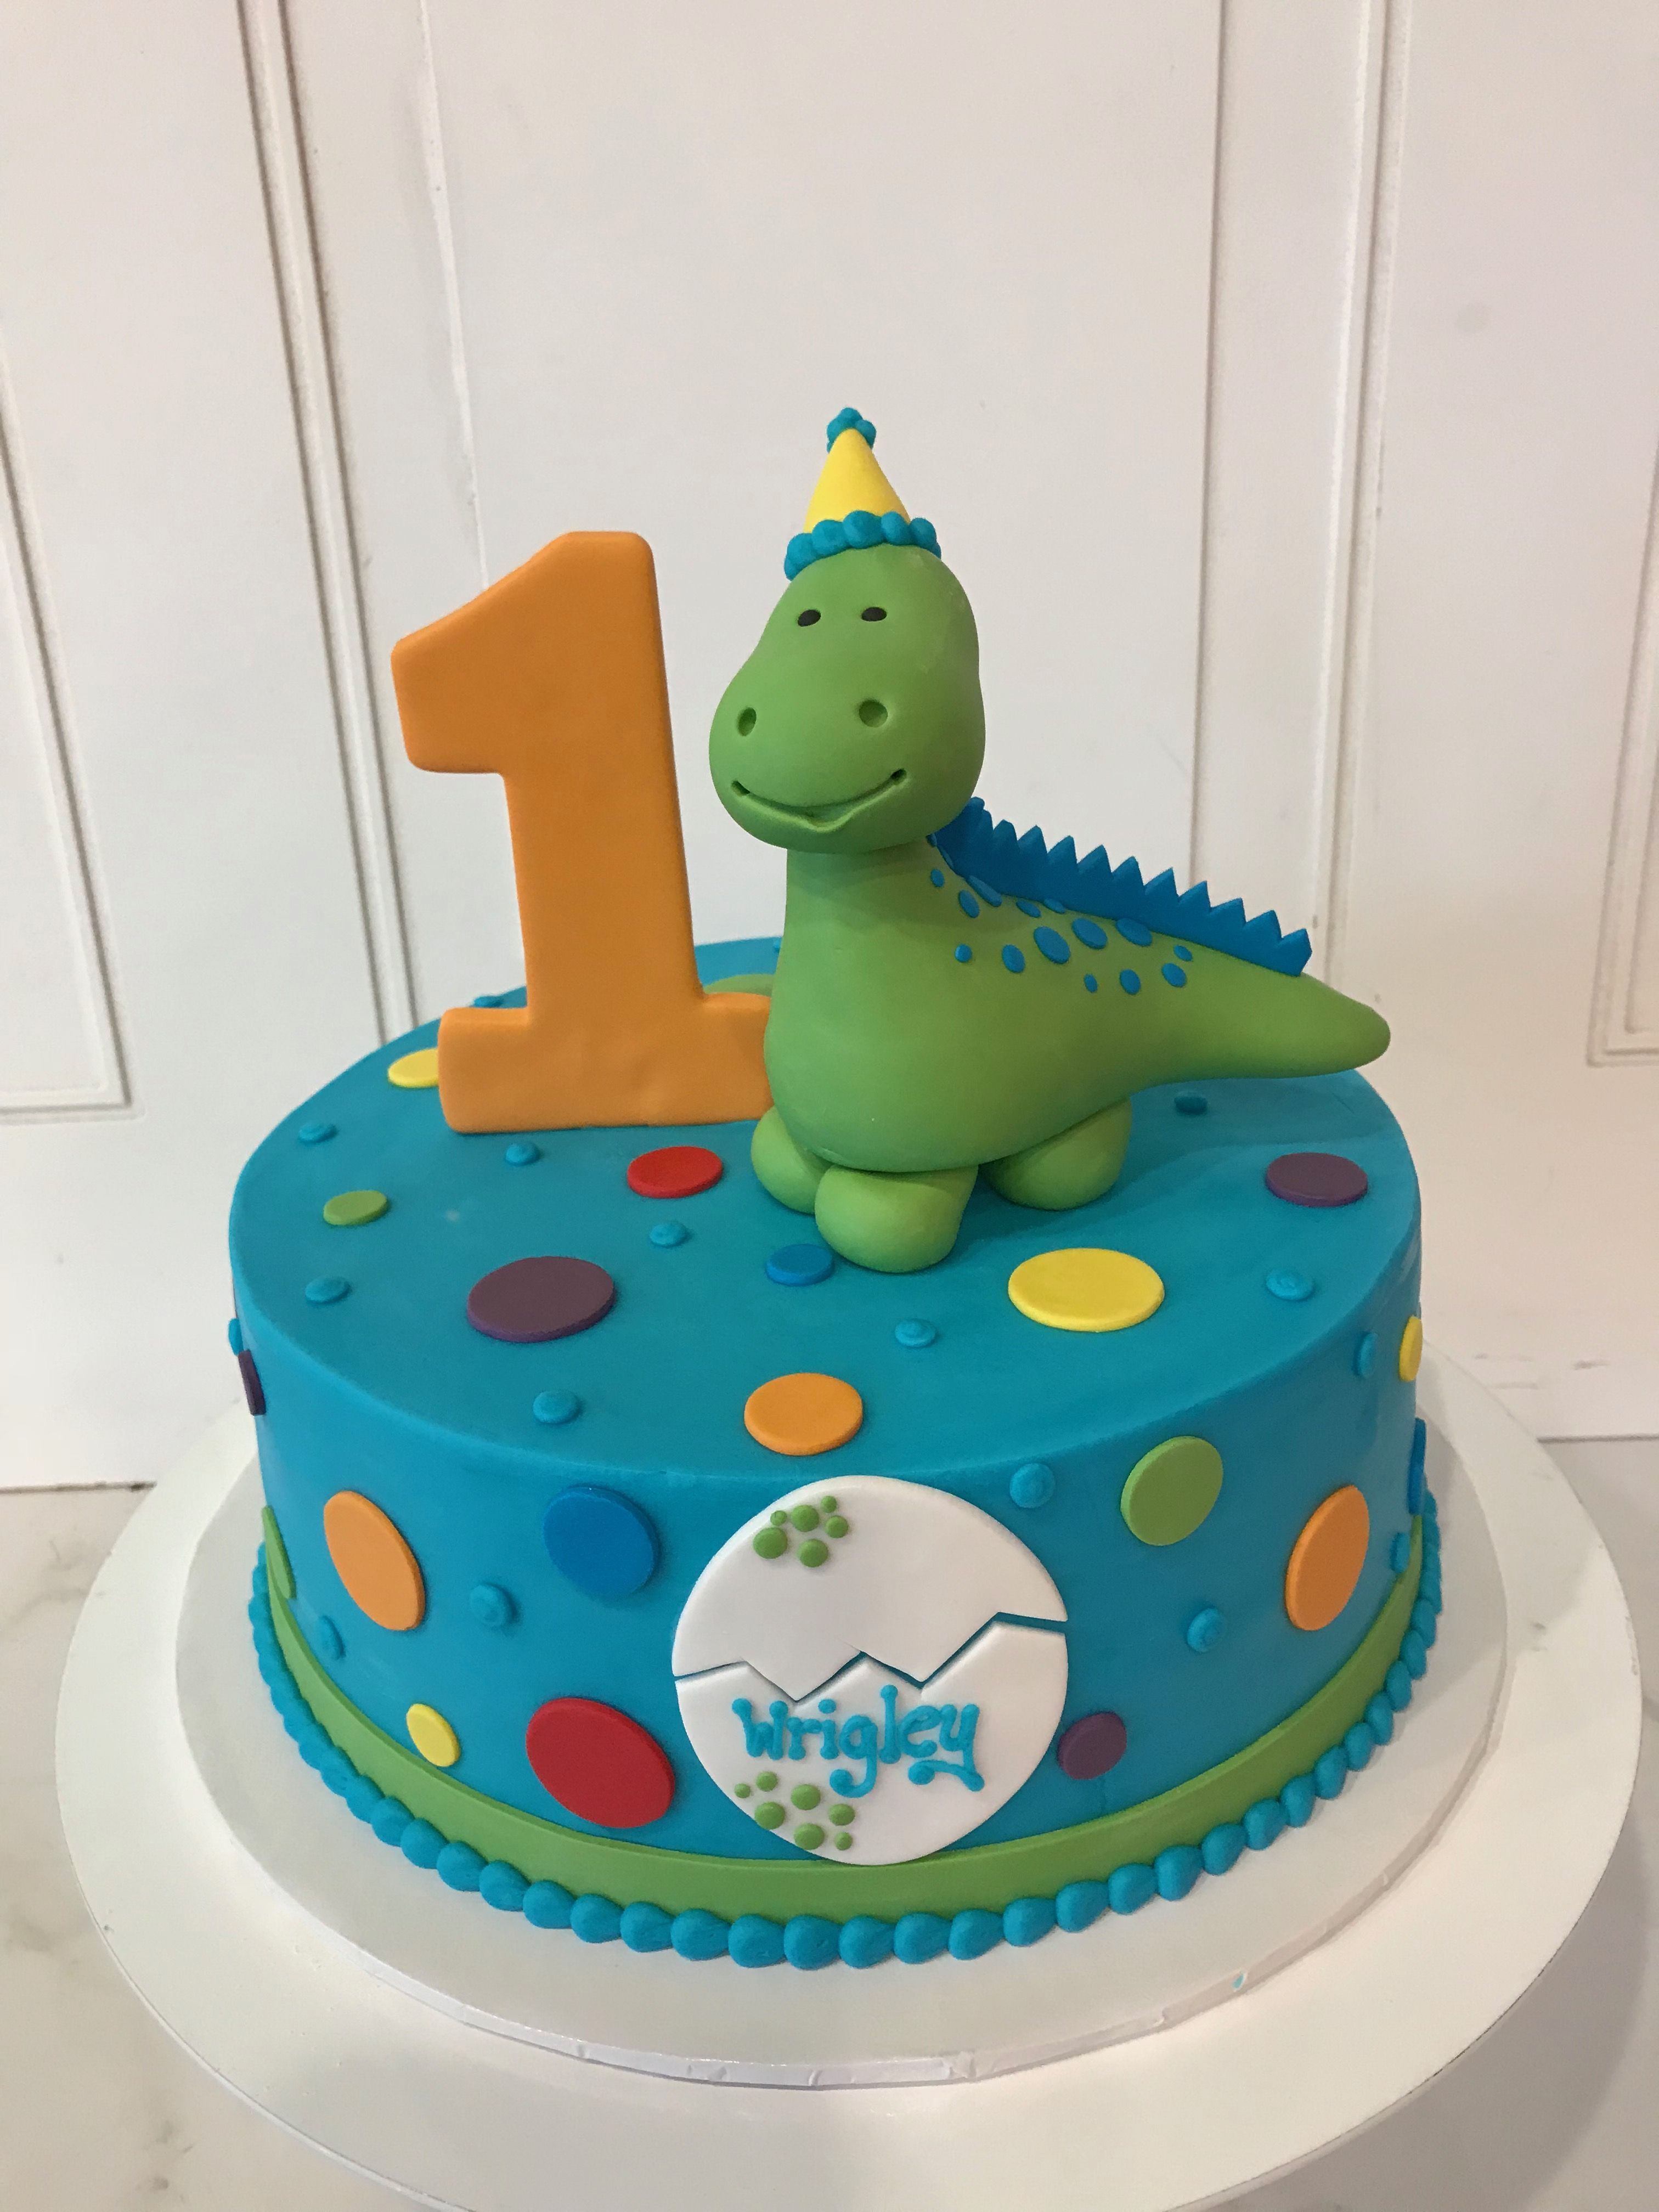 Wondrous Childrens Birthday Cakes That Are Unique And Delicious Personalised Birthday Cards Beptaeletsinfo